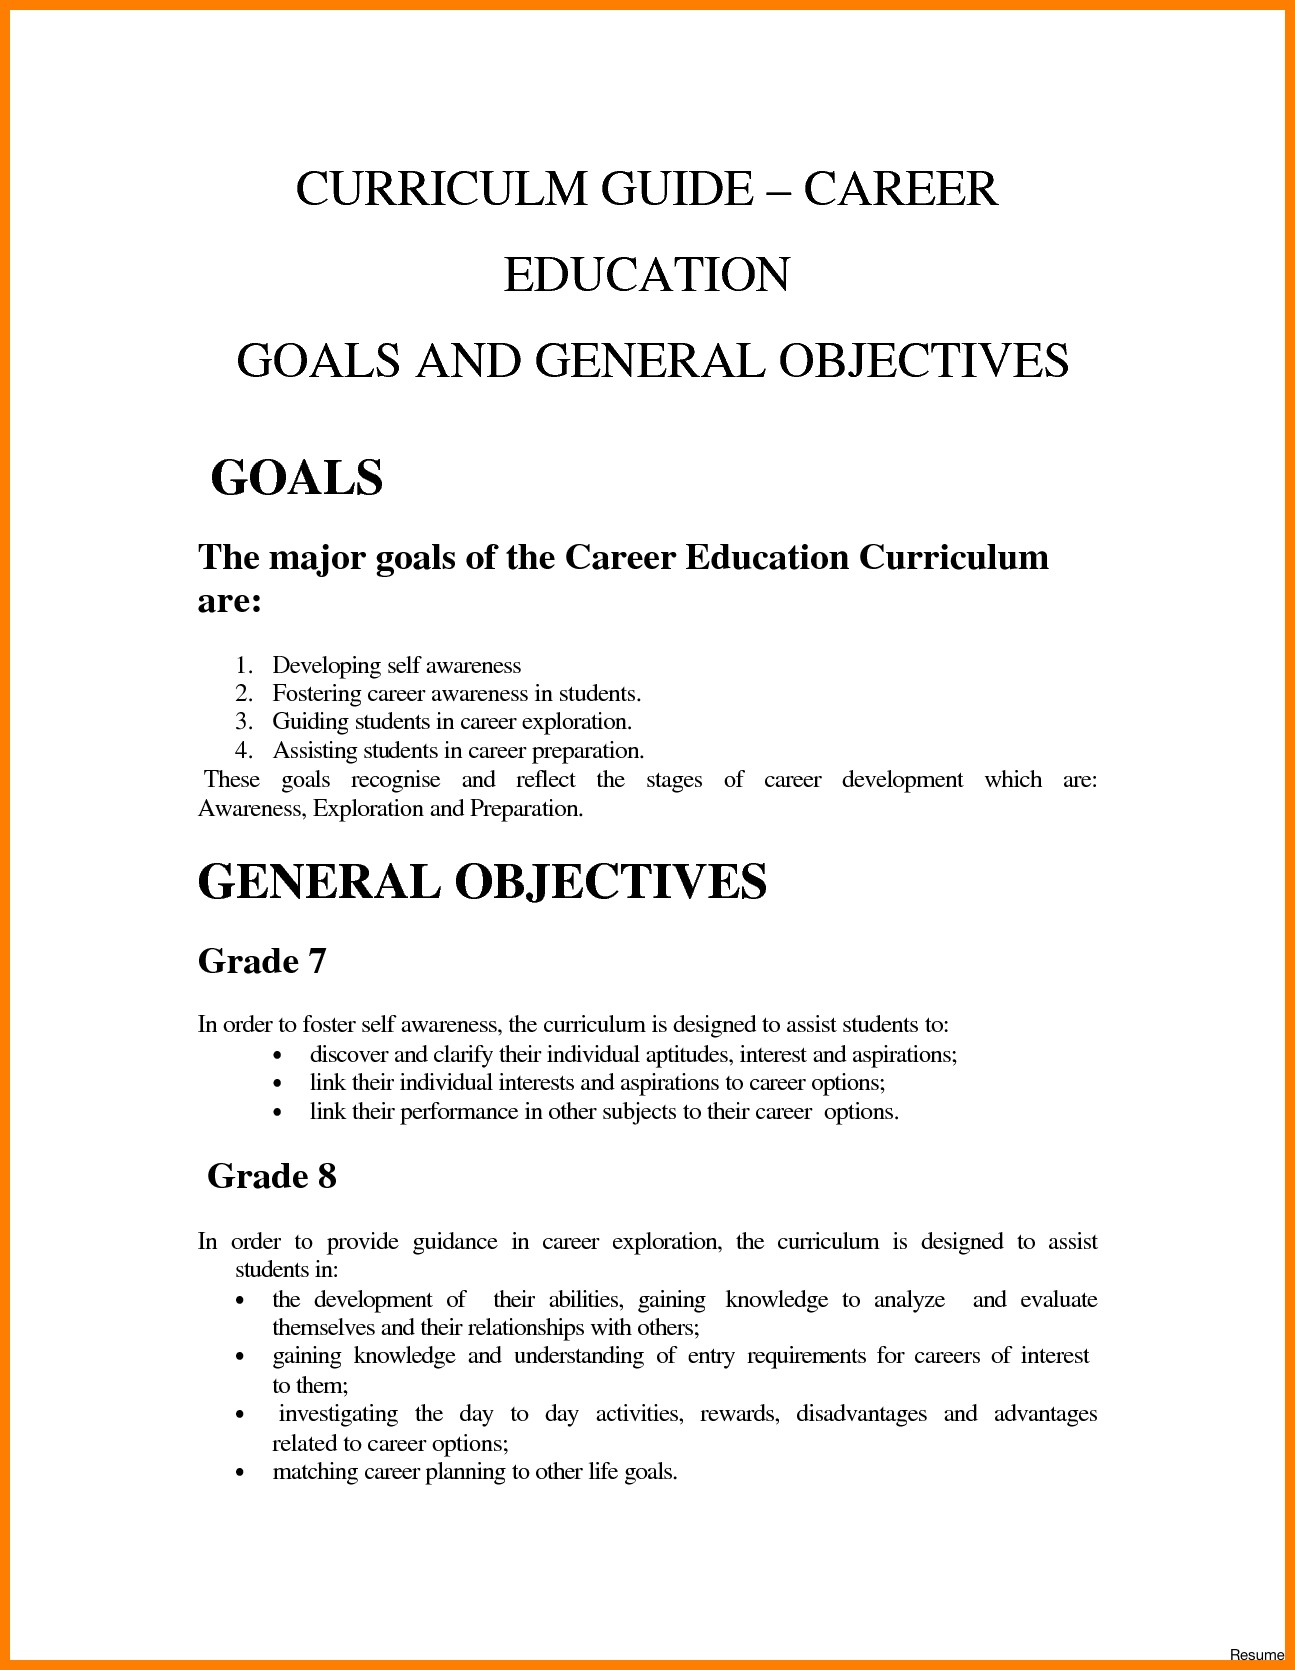 017 Work Goals And Objectivess Career Goal Essay Nursing Of Imposing Examples Future Pdf Educational Full